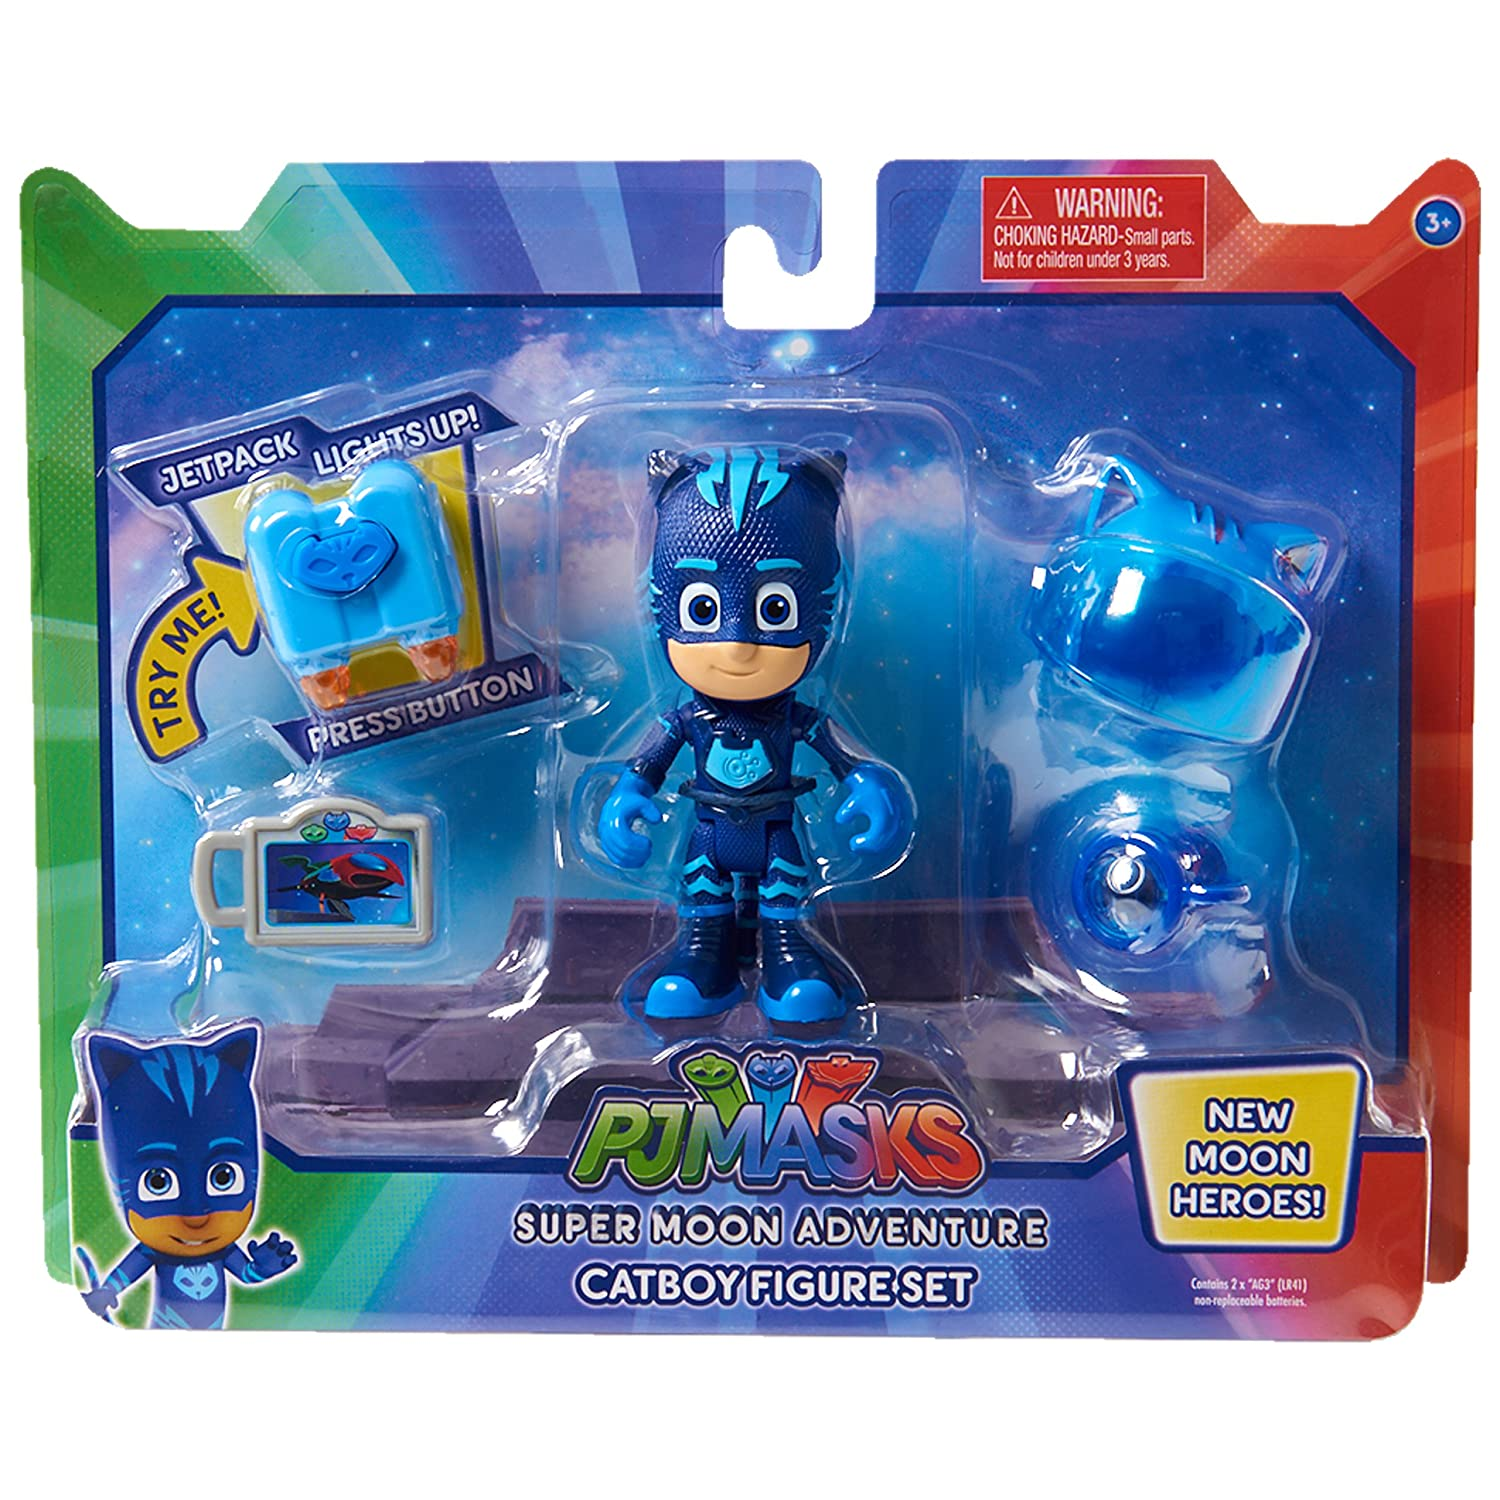 Amazon.com: PJMASKS Super Moon Adventure Figure Set-Catboy, Blue: Toys & Games